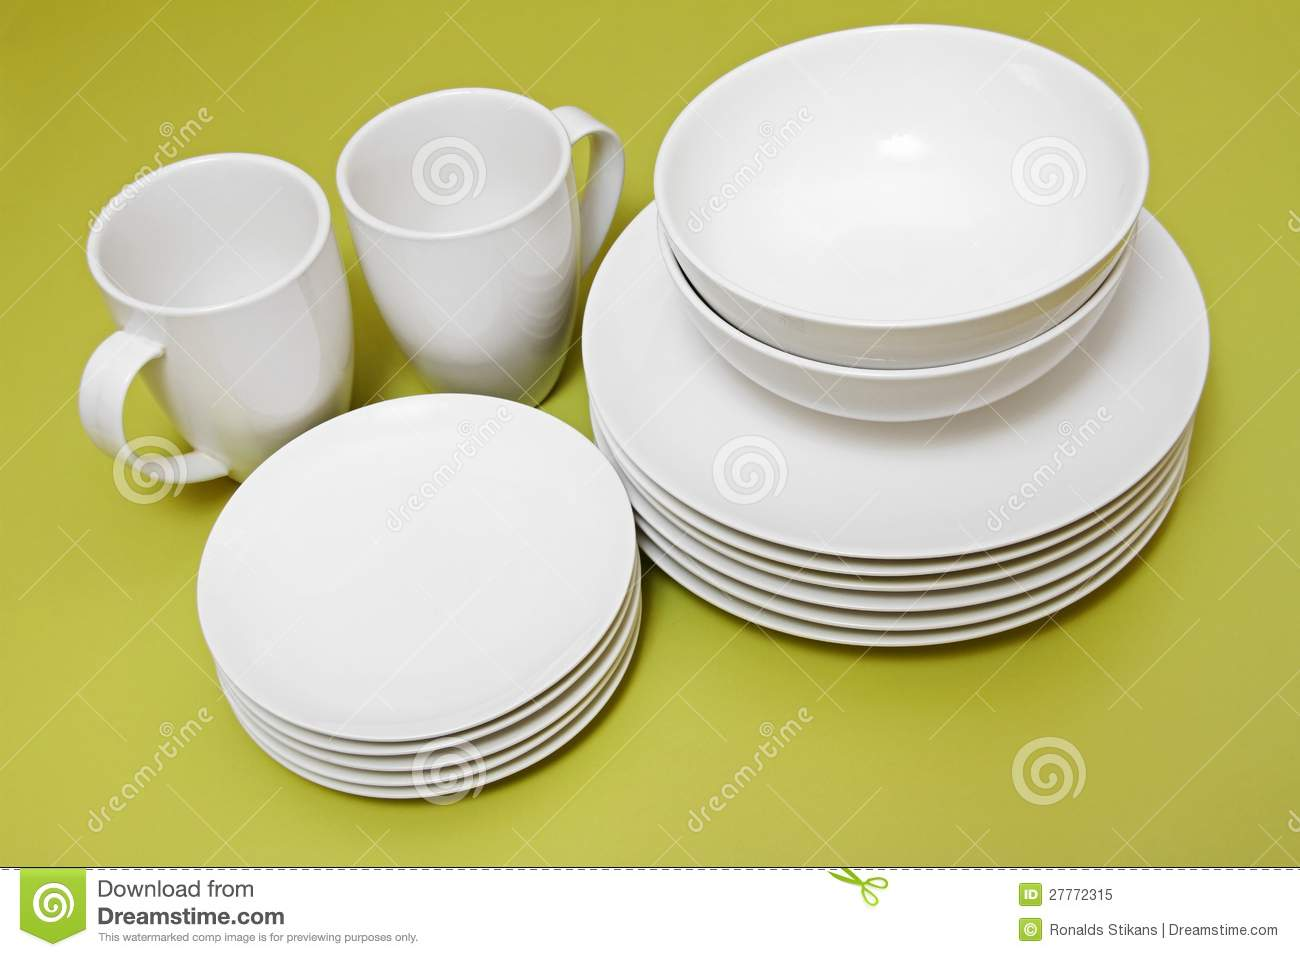 Clean Plates Bowls And Cups Royalty Free Stock Photo  : clean plates bowls cups 27772315 from dreamstime.com size 1300 x 957 jpeg 74kB